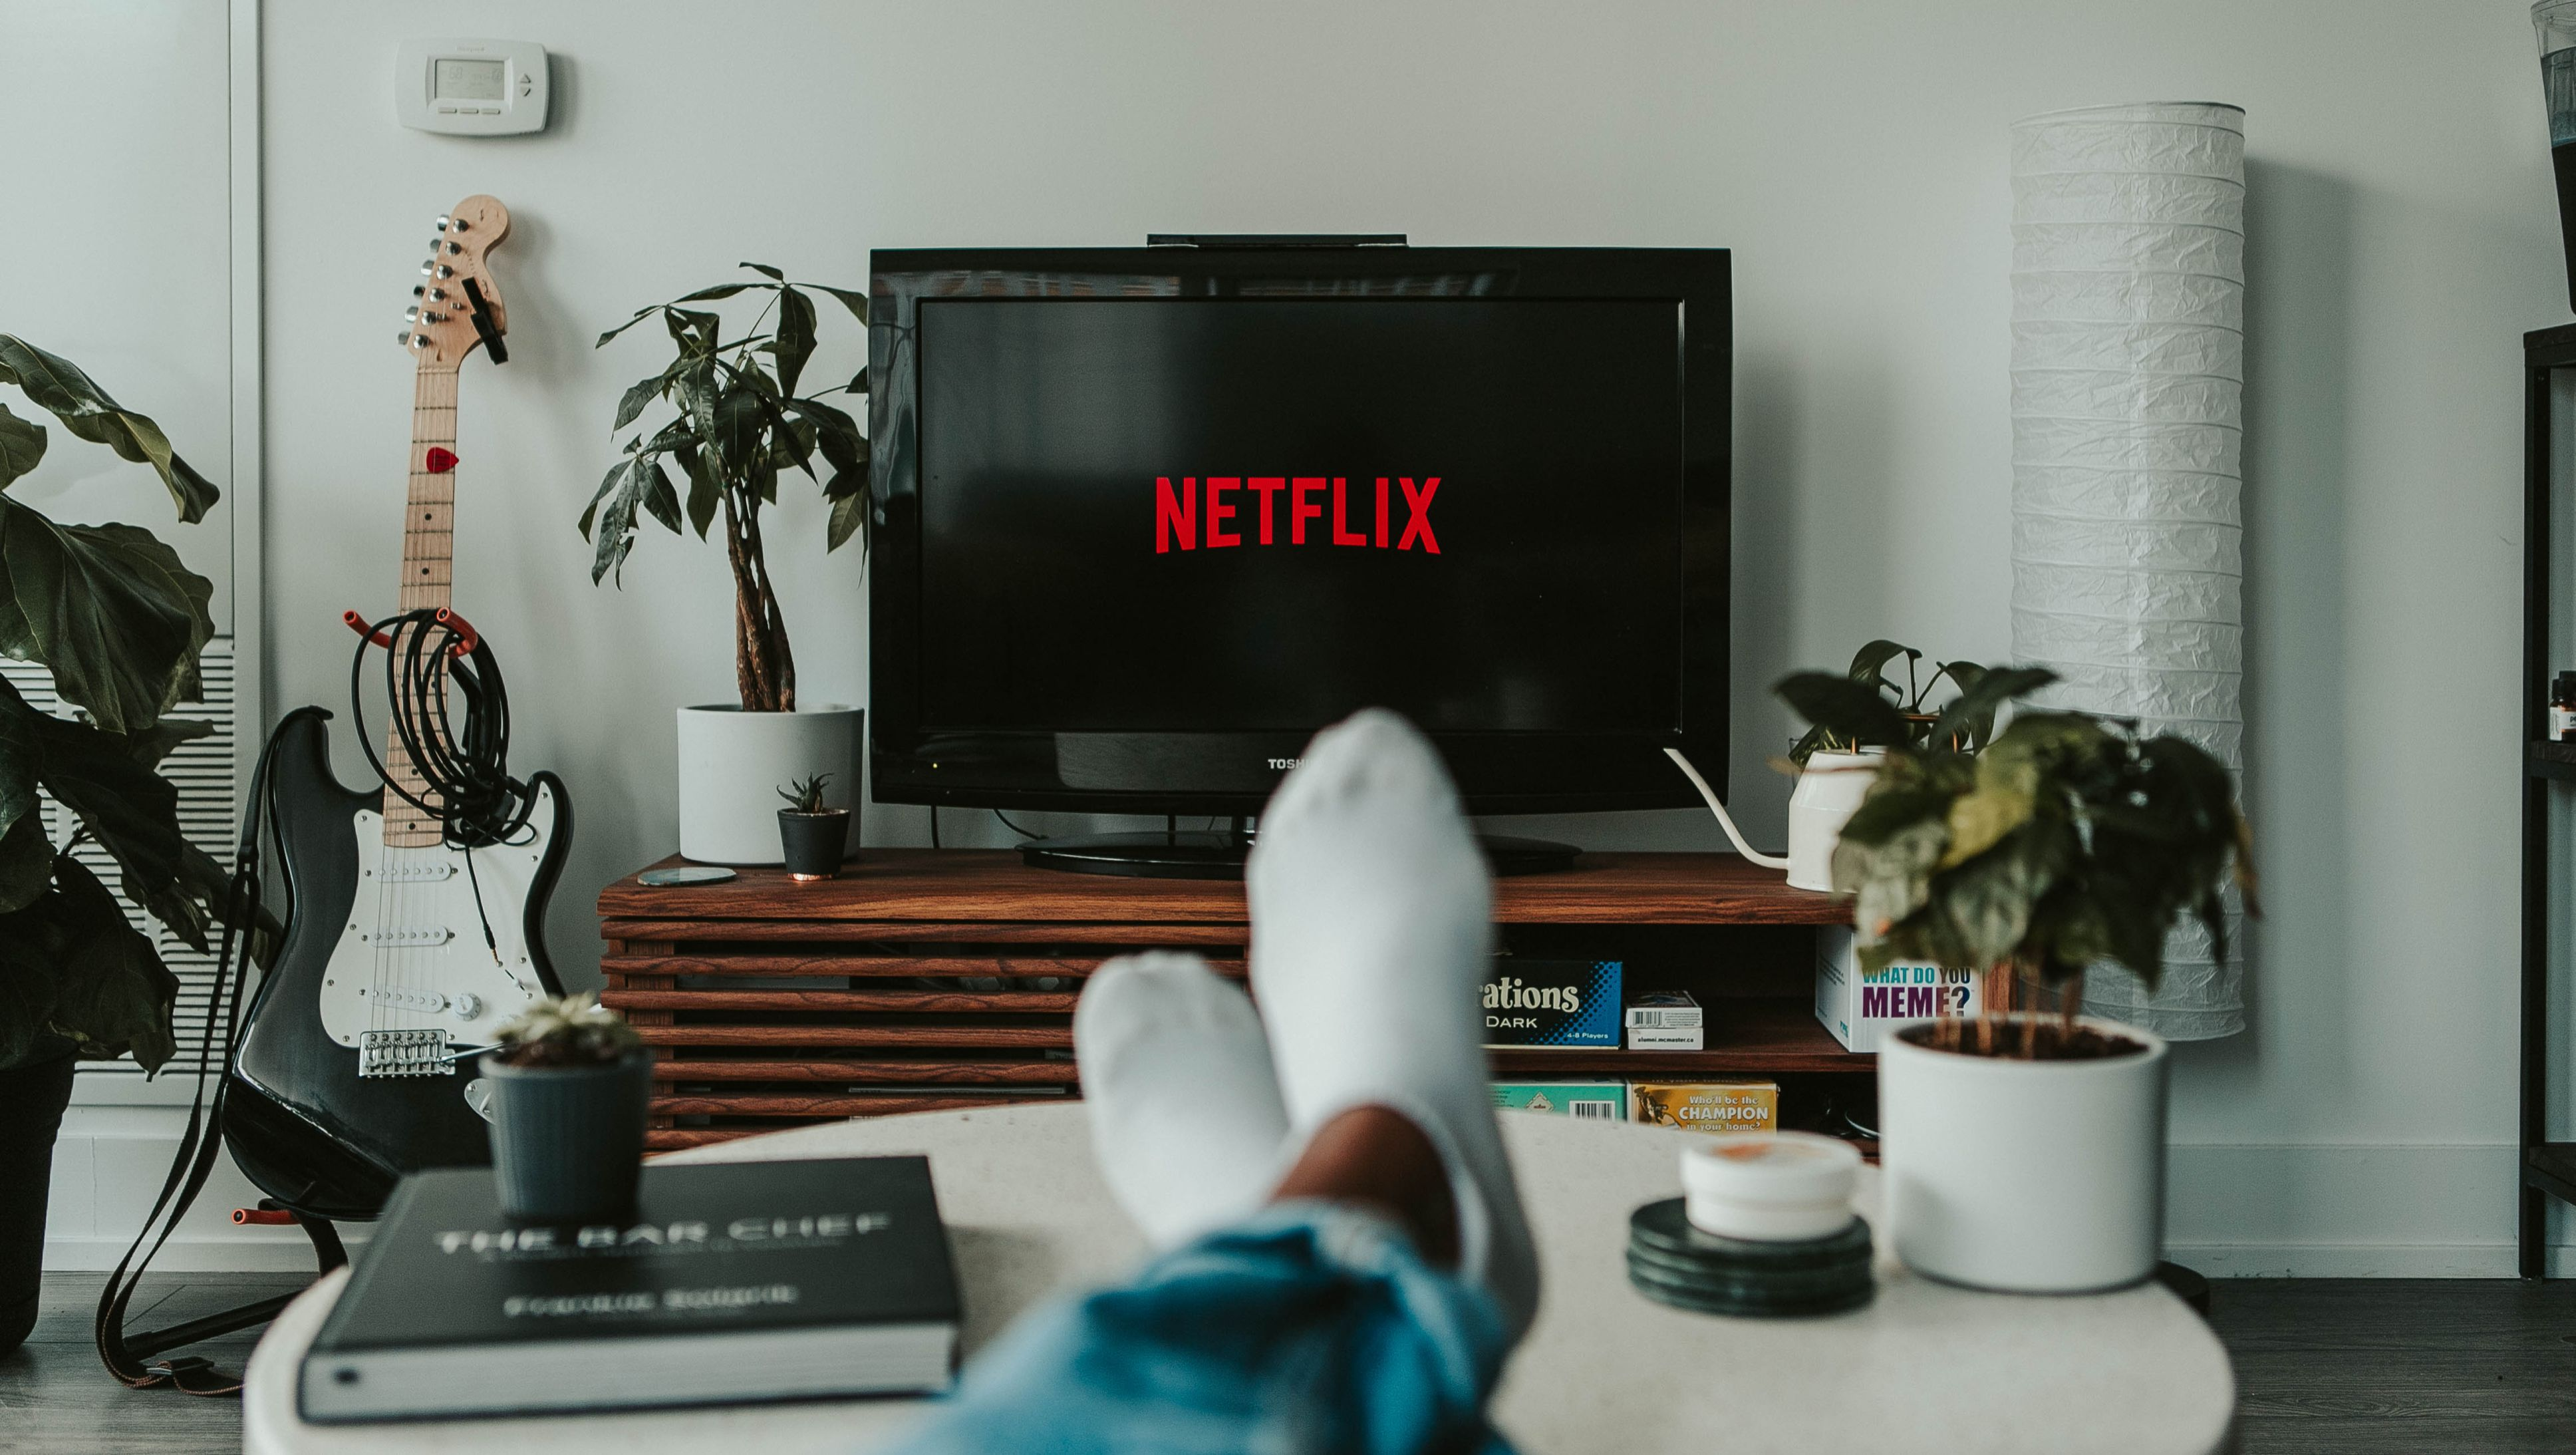 A pair of feet are seen in front of a TV with Netflix streaming.